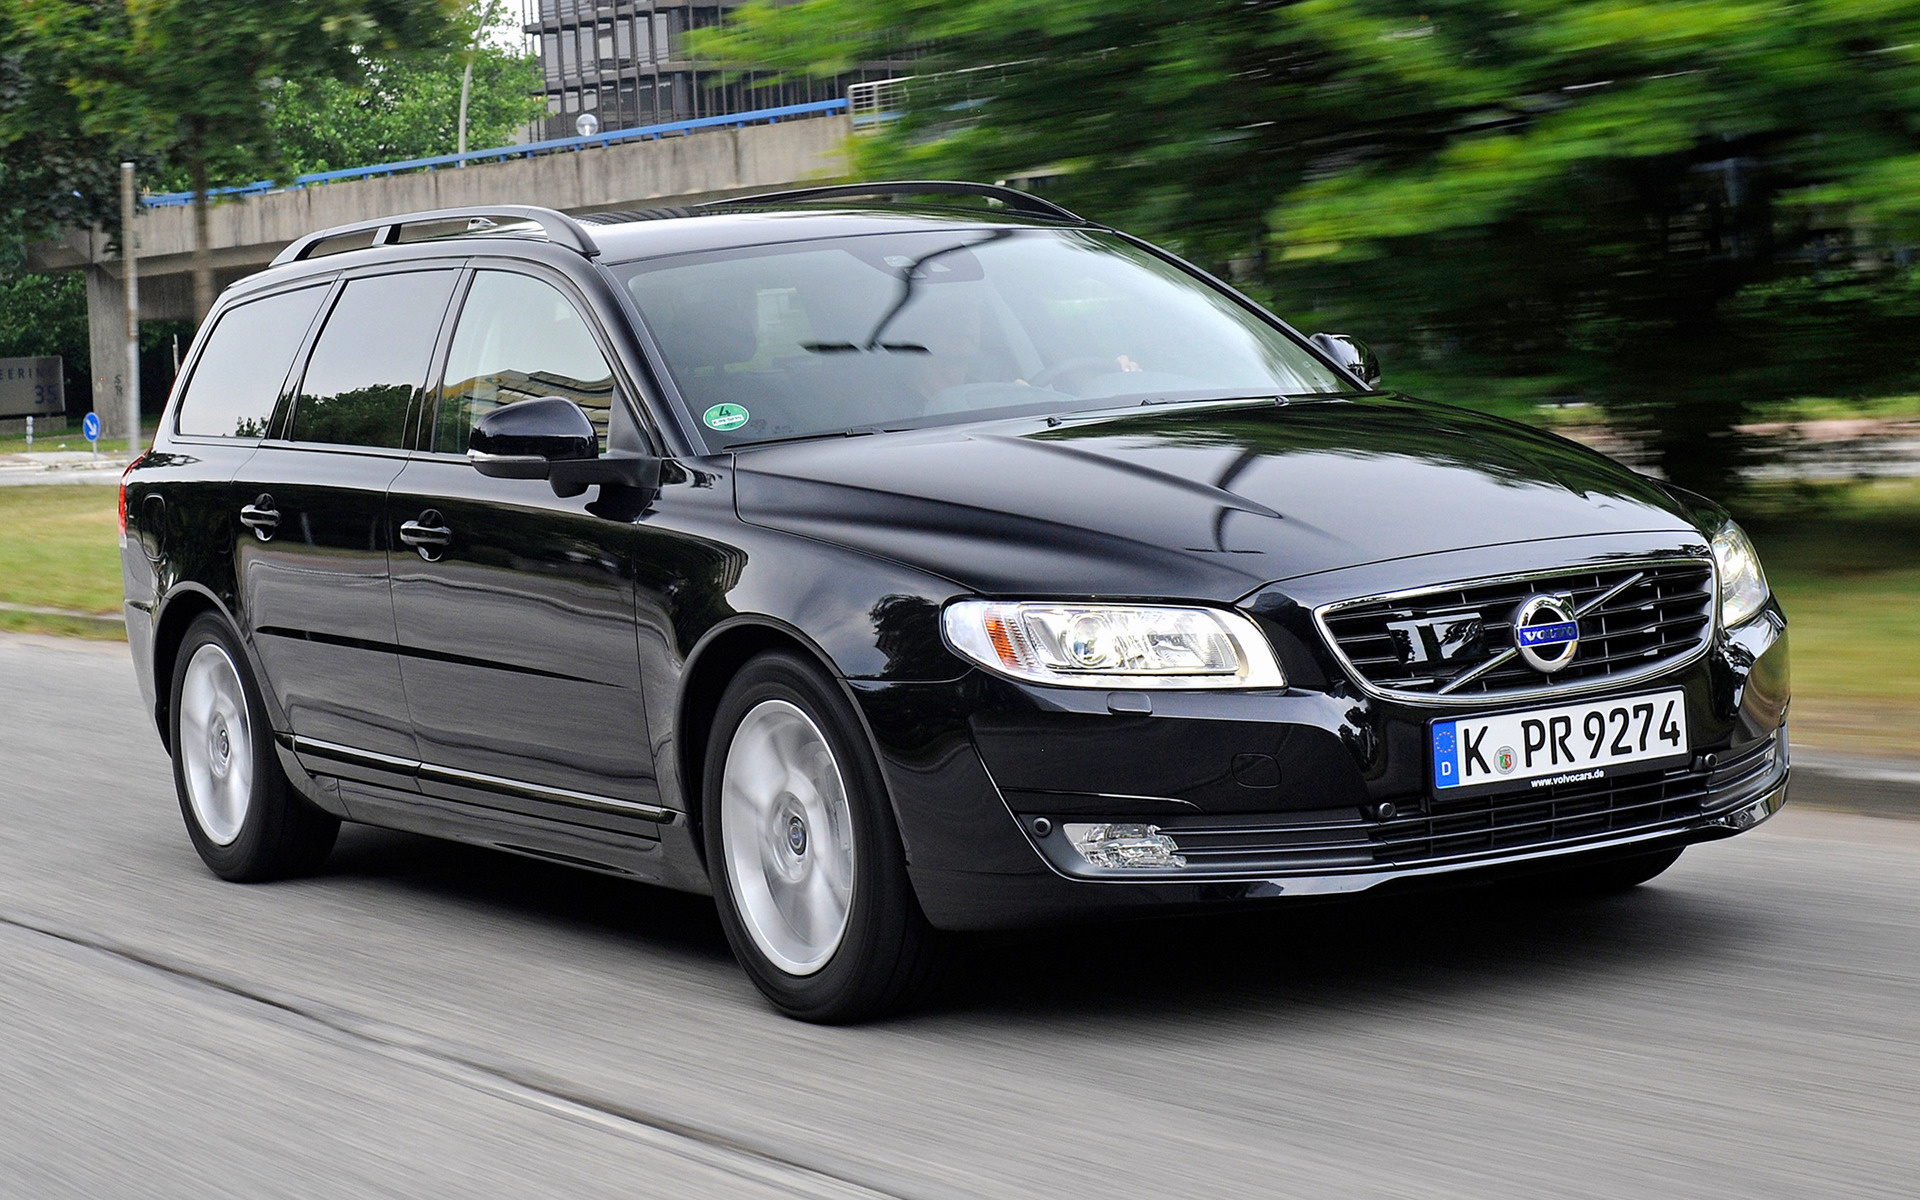 2014 Volvo V70 Black Wallpapers And Hd Images Car Pixel